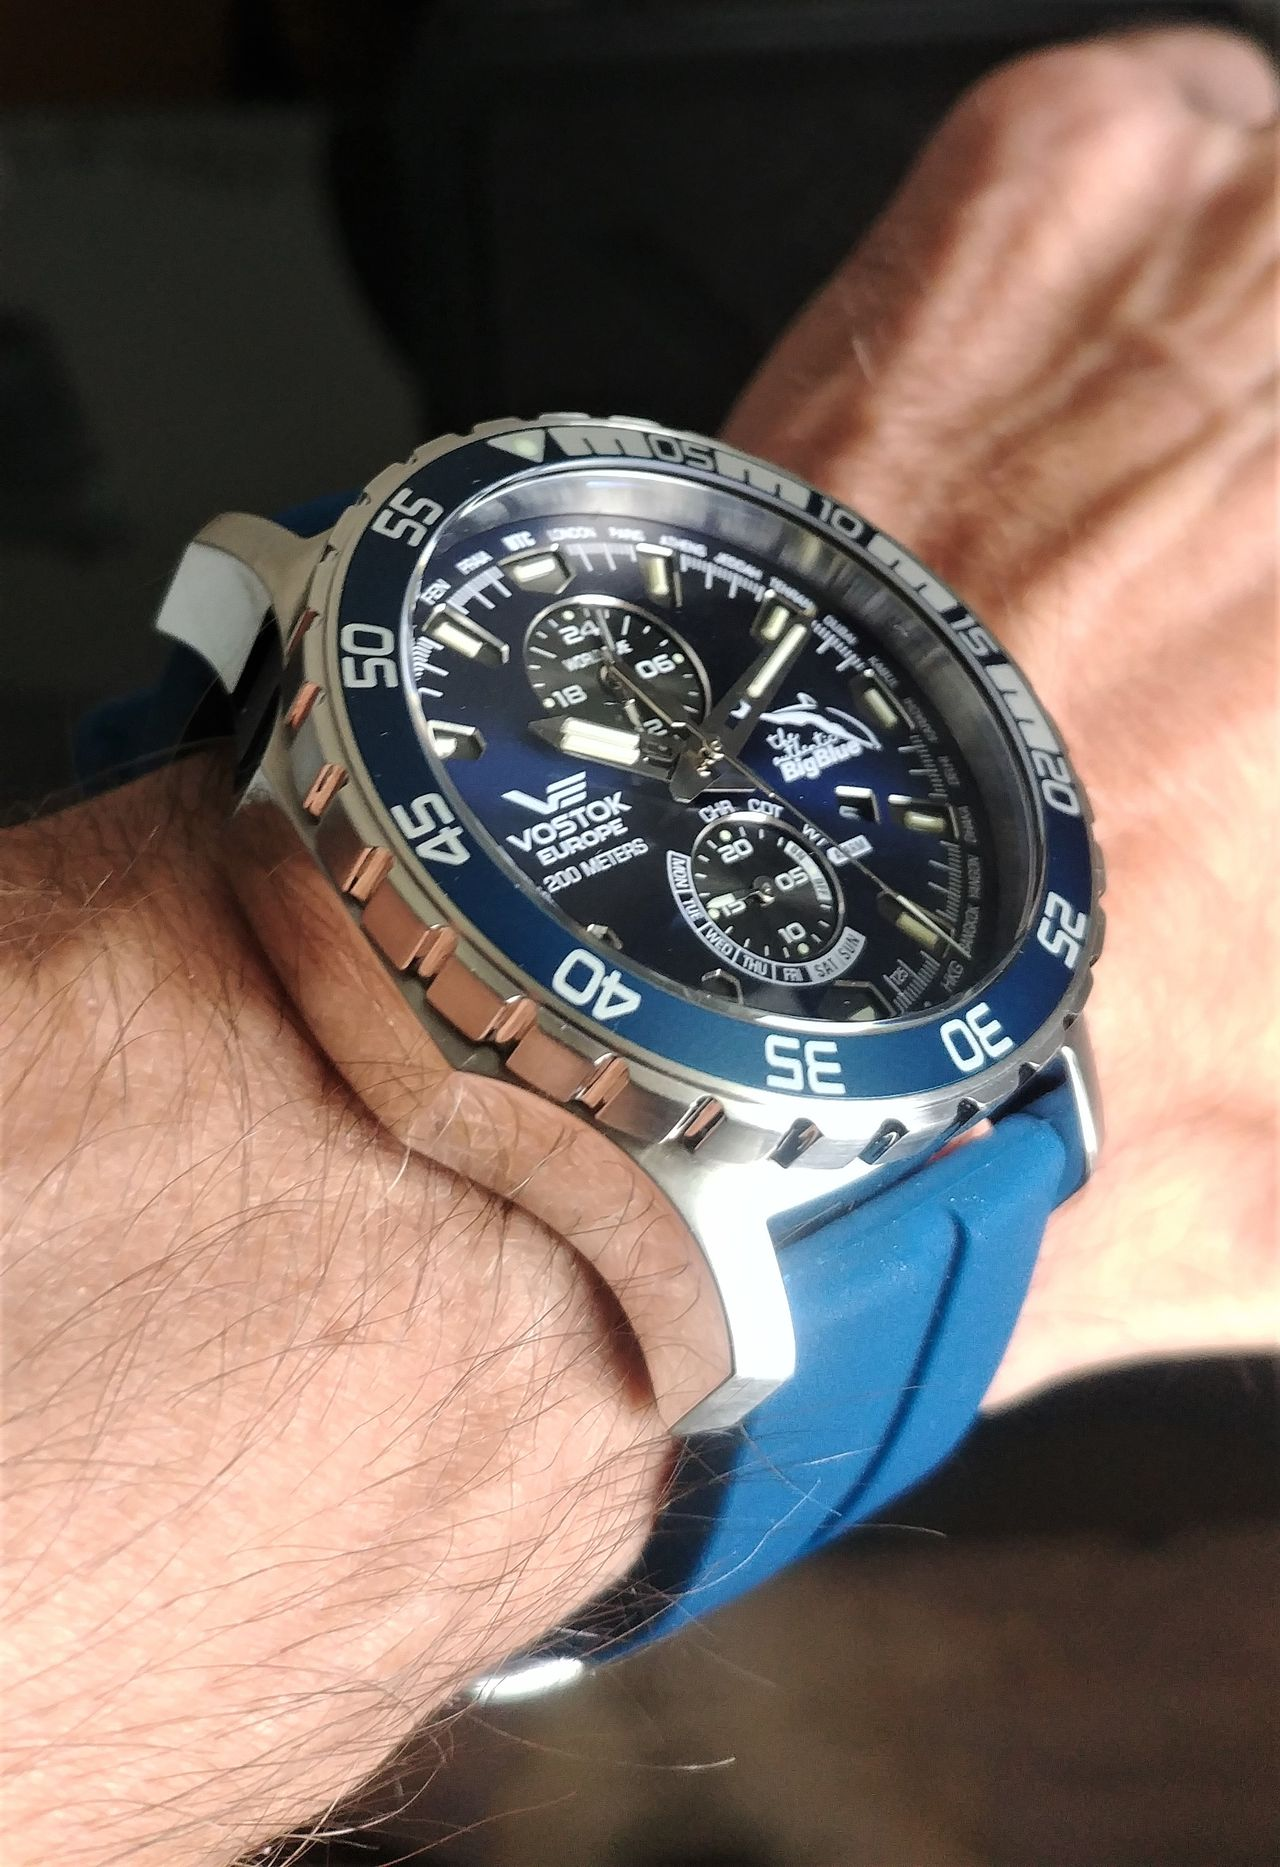 Vostok Europe The Authentic Big Blue Limited Anniversary Edition - mandzsettával ne bajlódjunk - Fotó: Venicz Áron